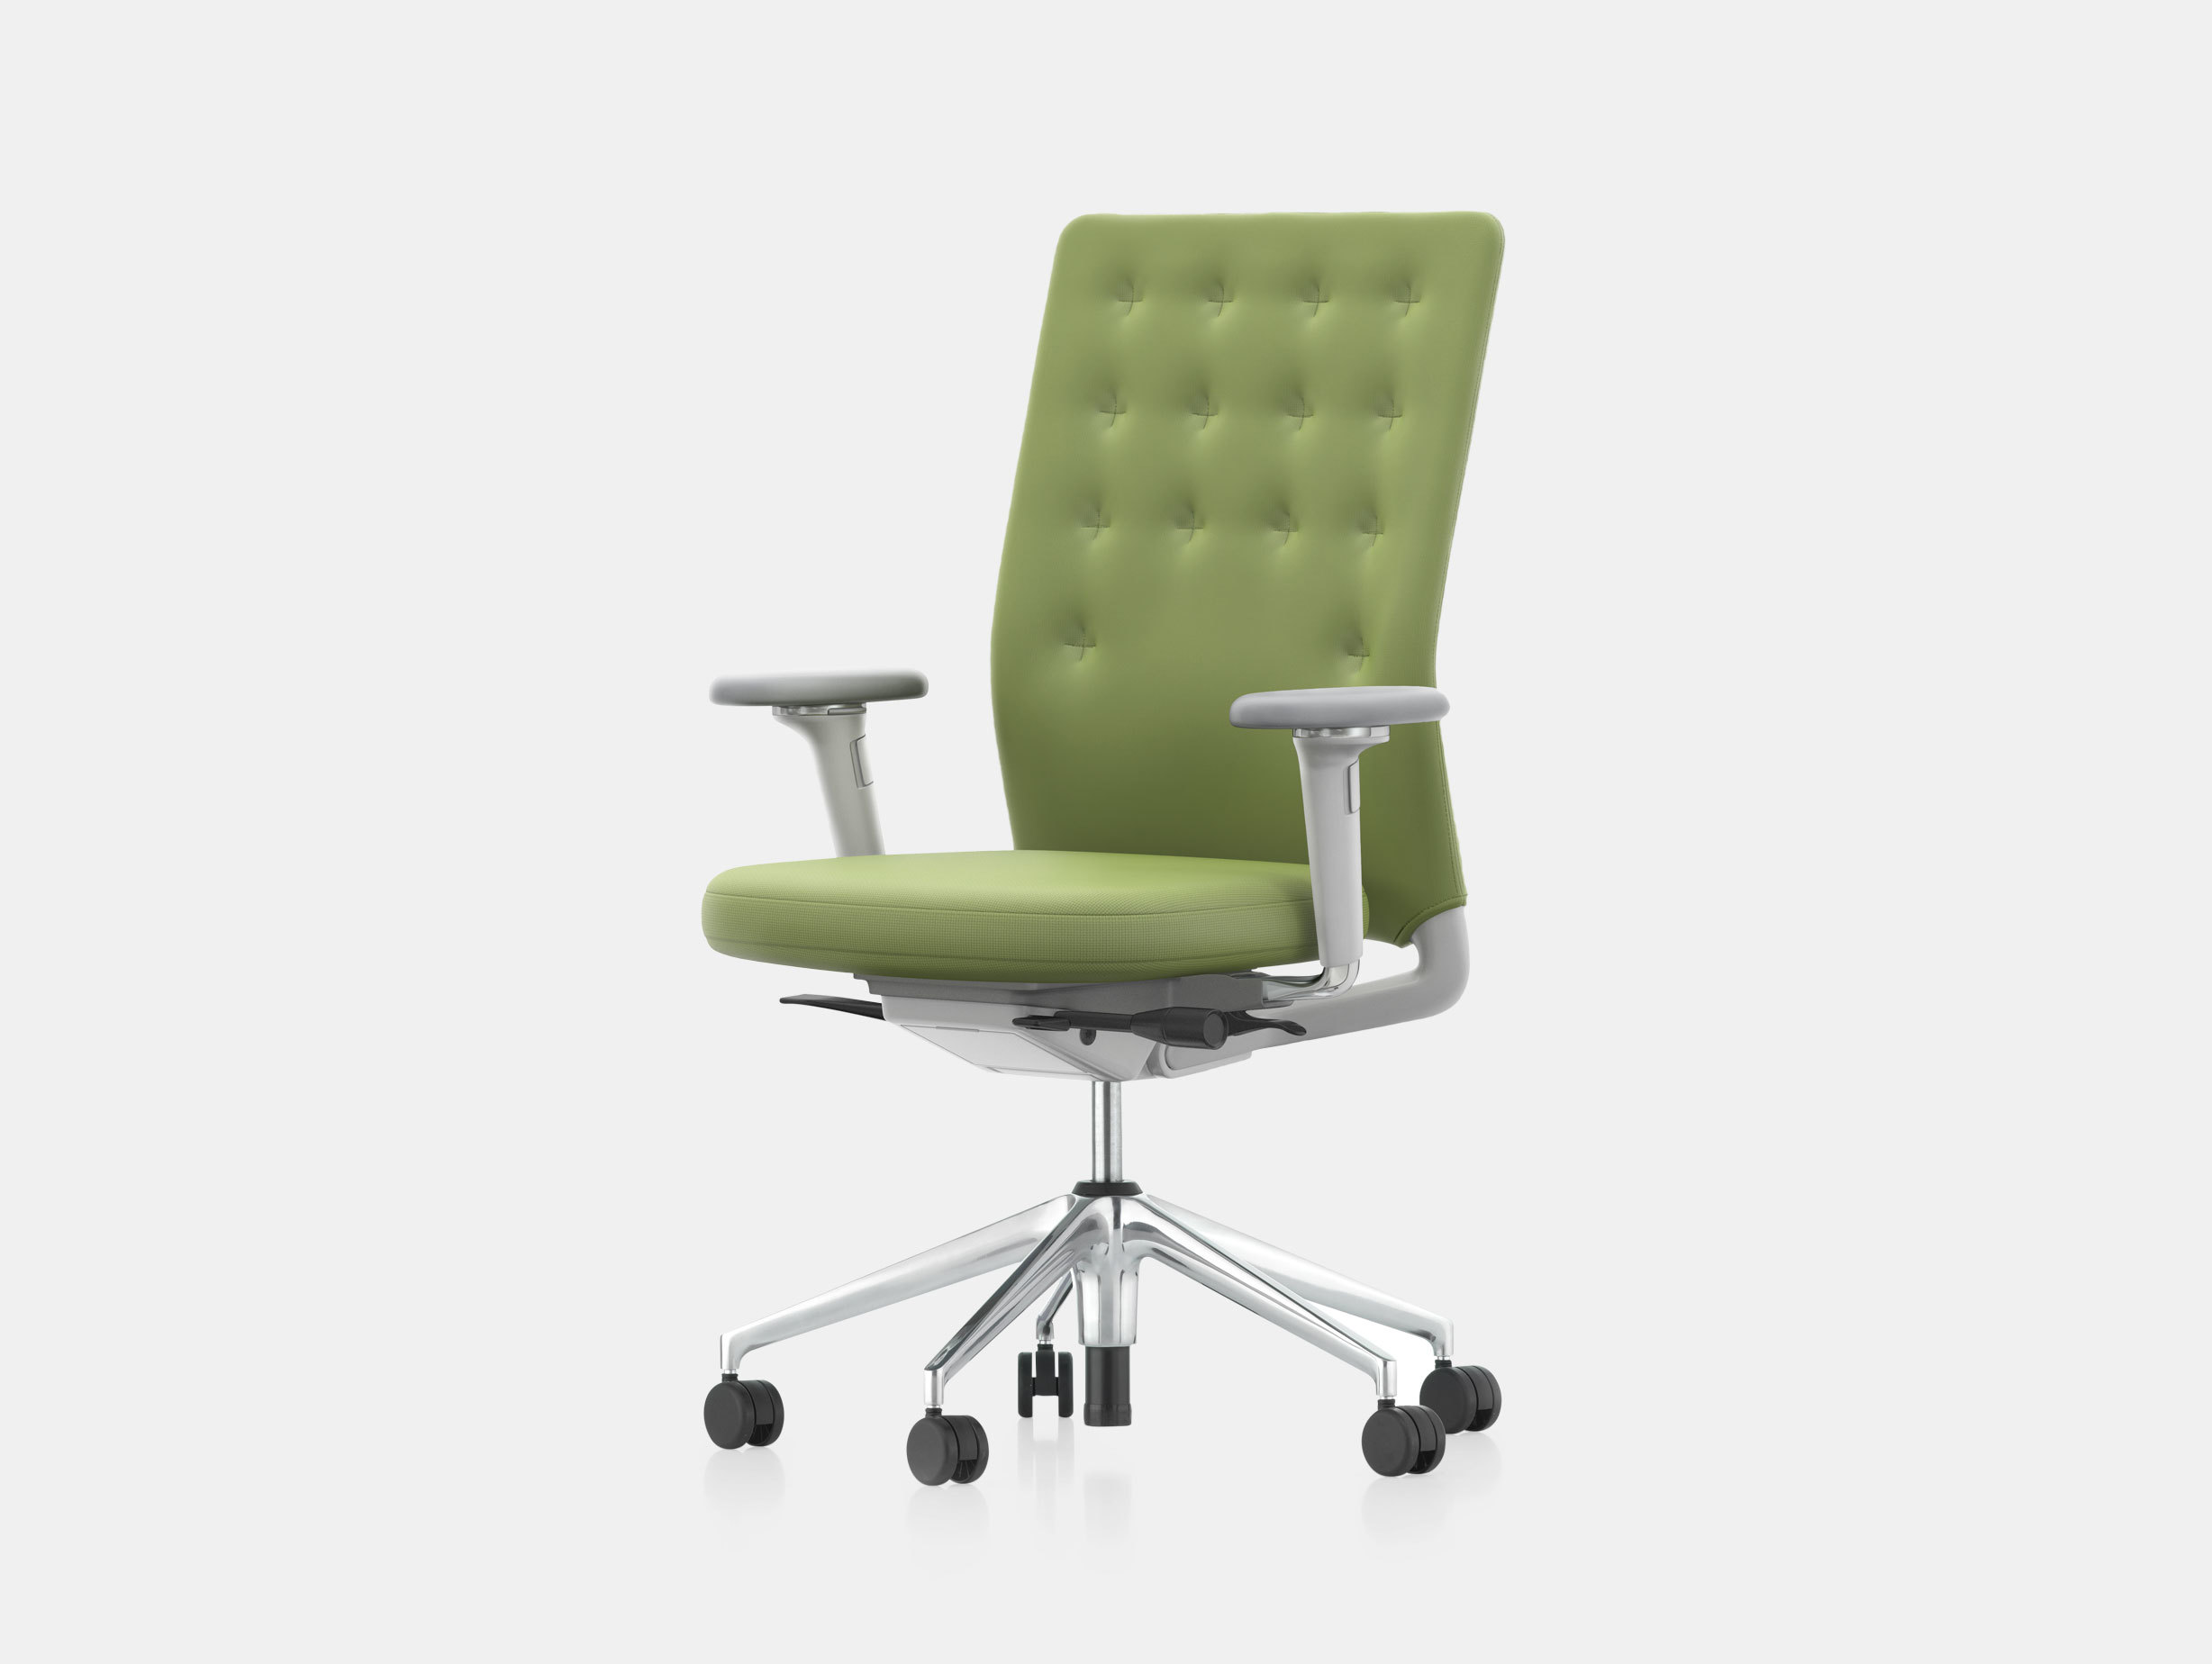 ID Trim Office Chair image 1